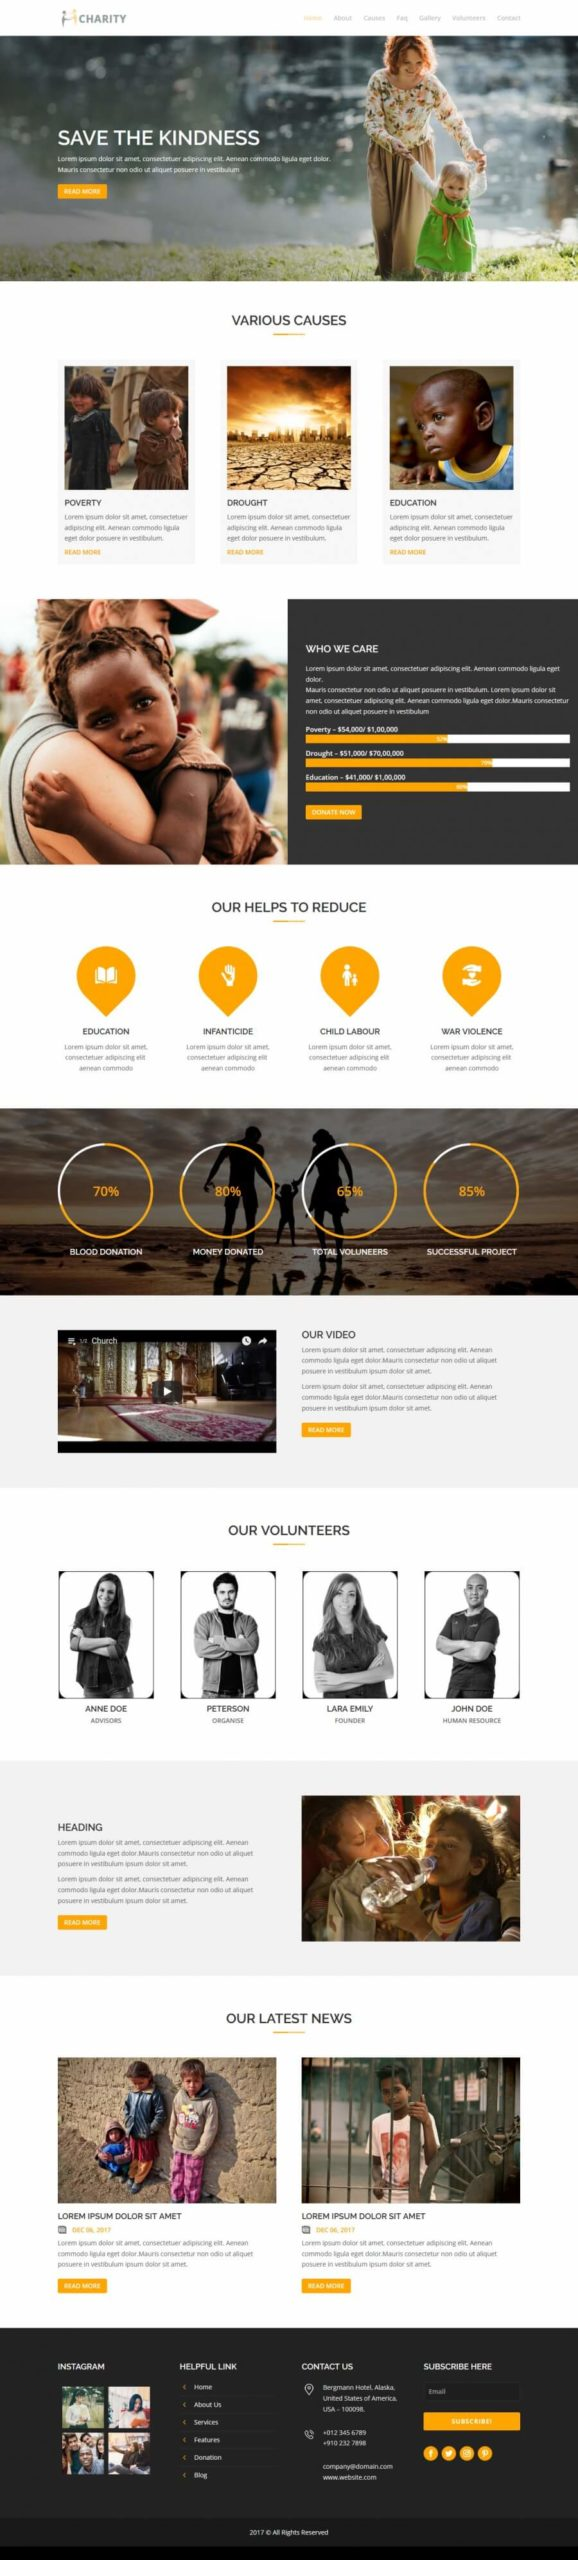 Charity - Home Page - Keenicon